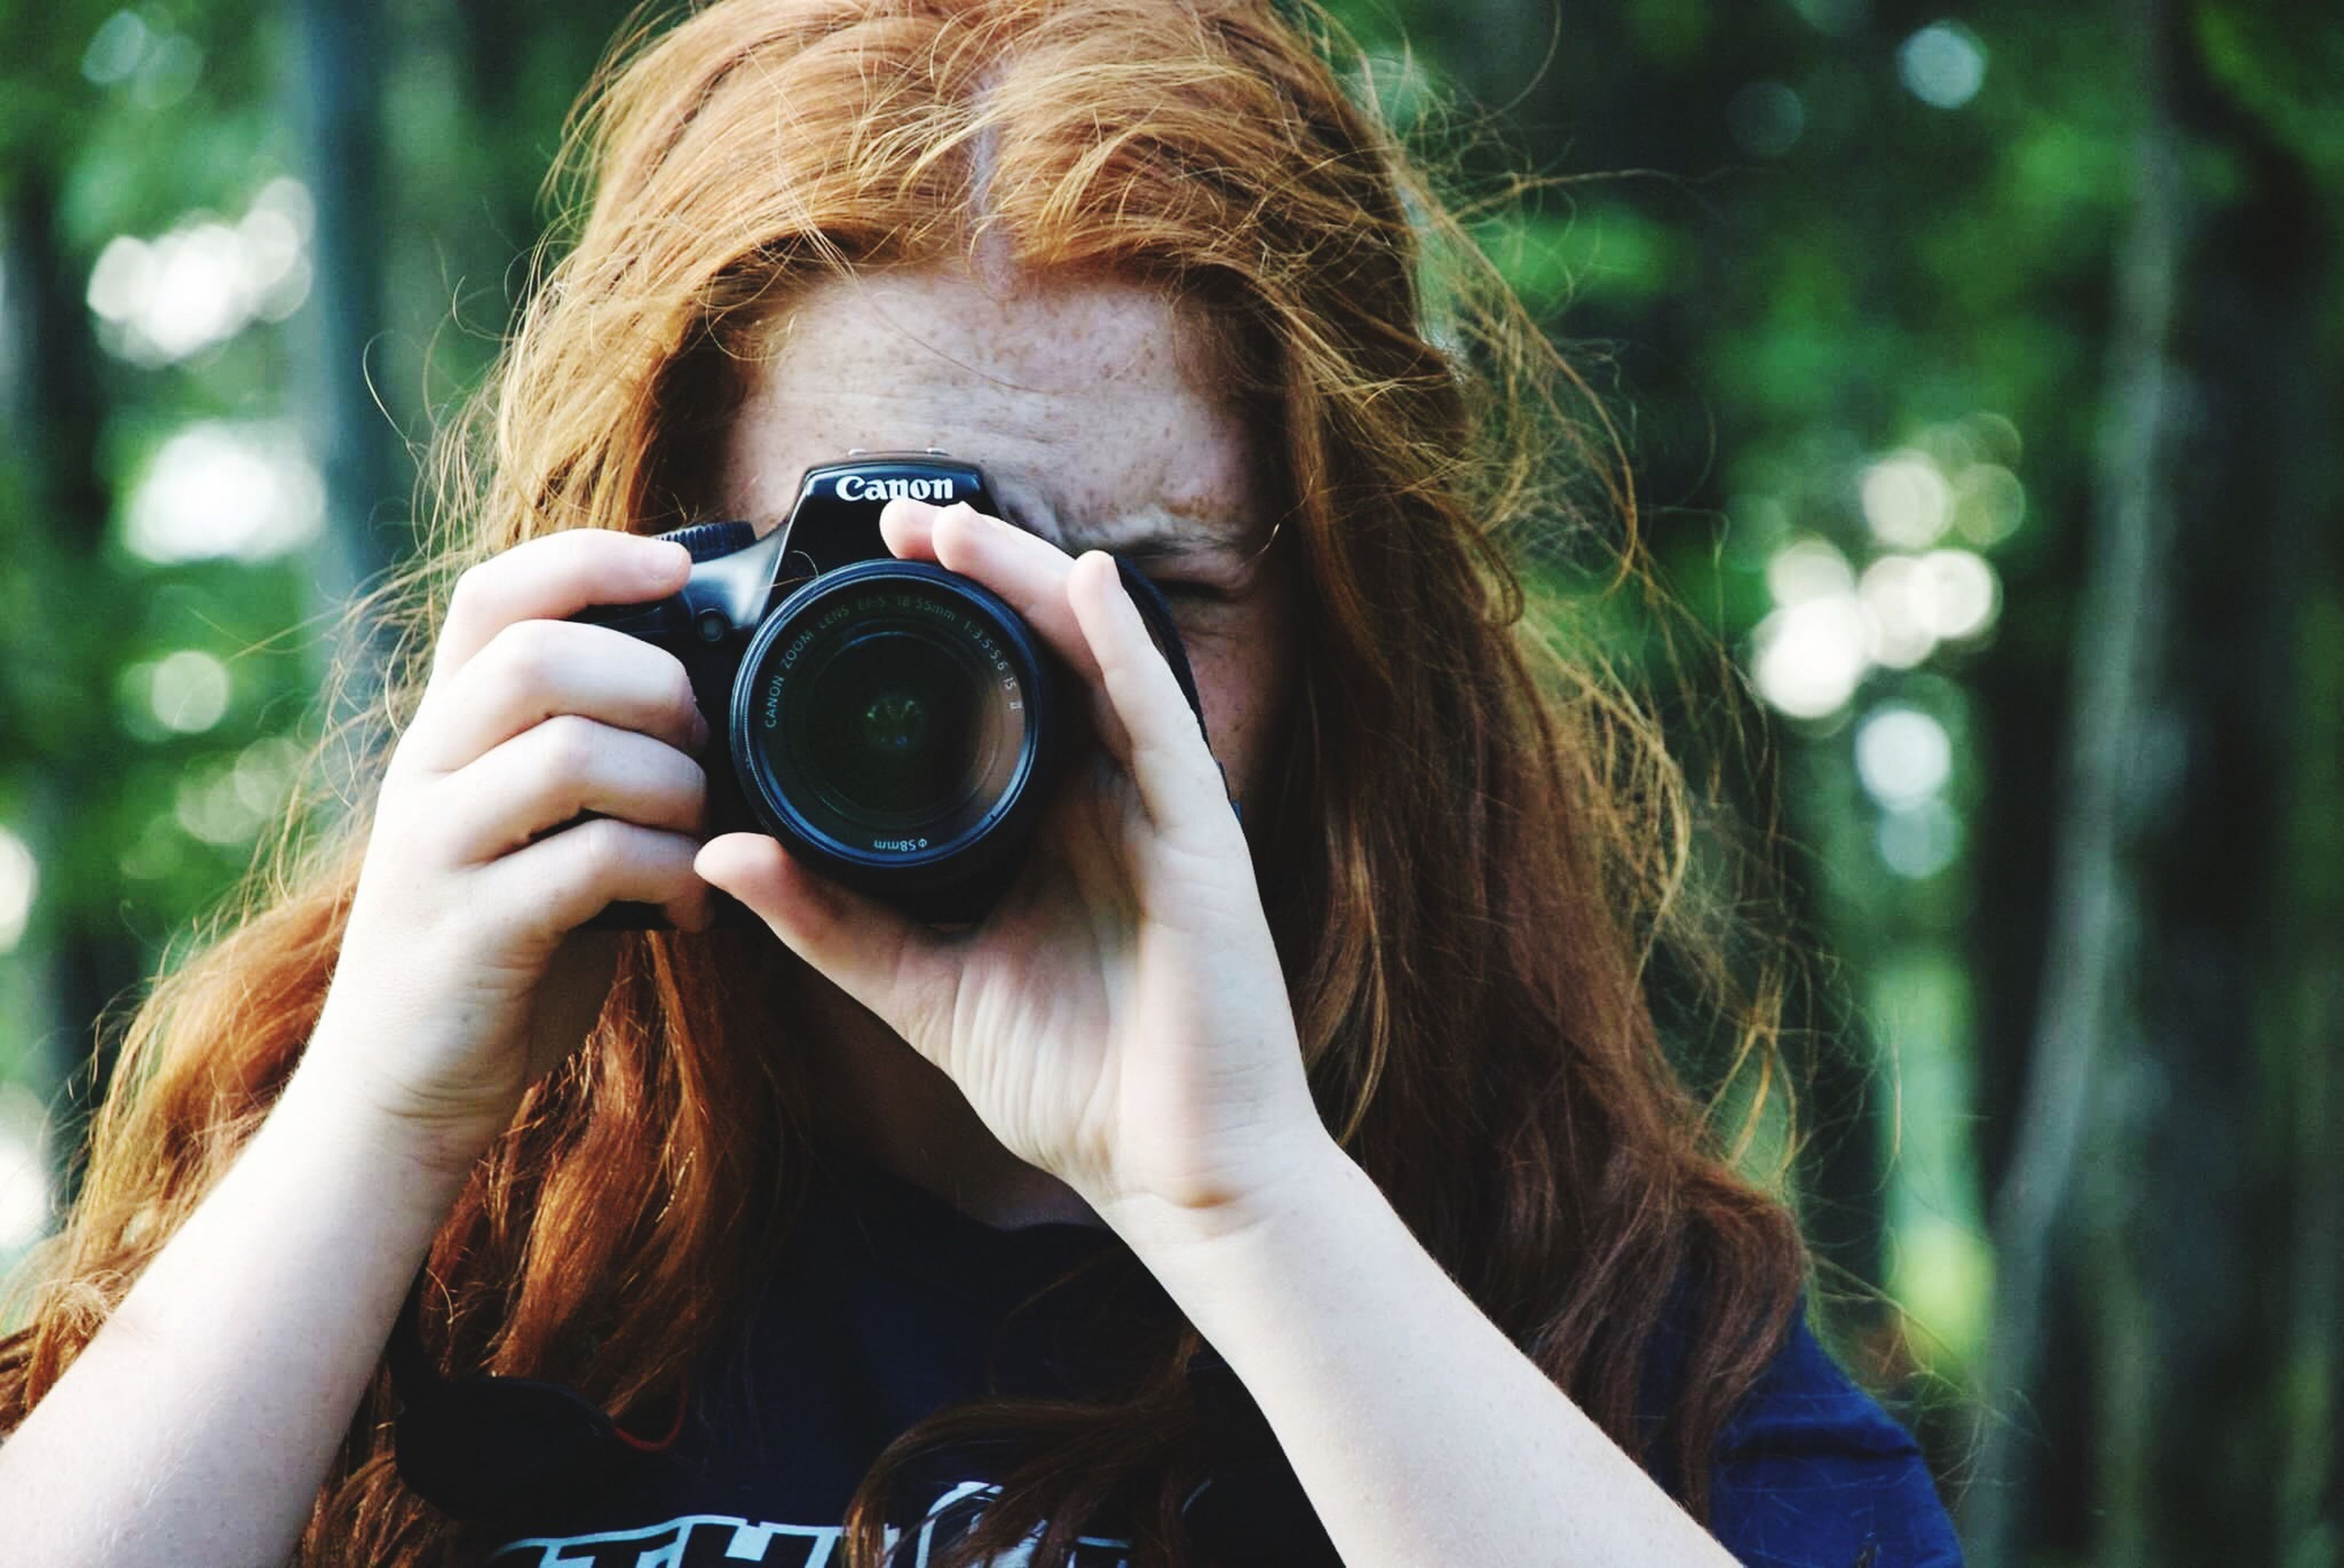 close-up, leisure activity, lifestyles, focus on foreground, person, headshot, holding, camera - photographic equipment, outdoors, day, human face, human eye, human hair, hiding, looking